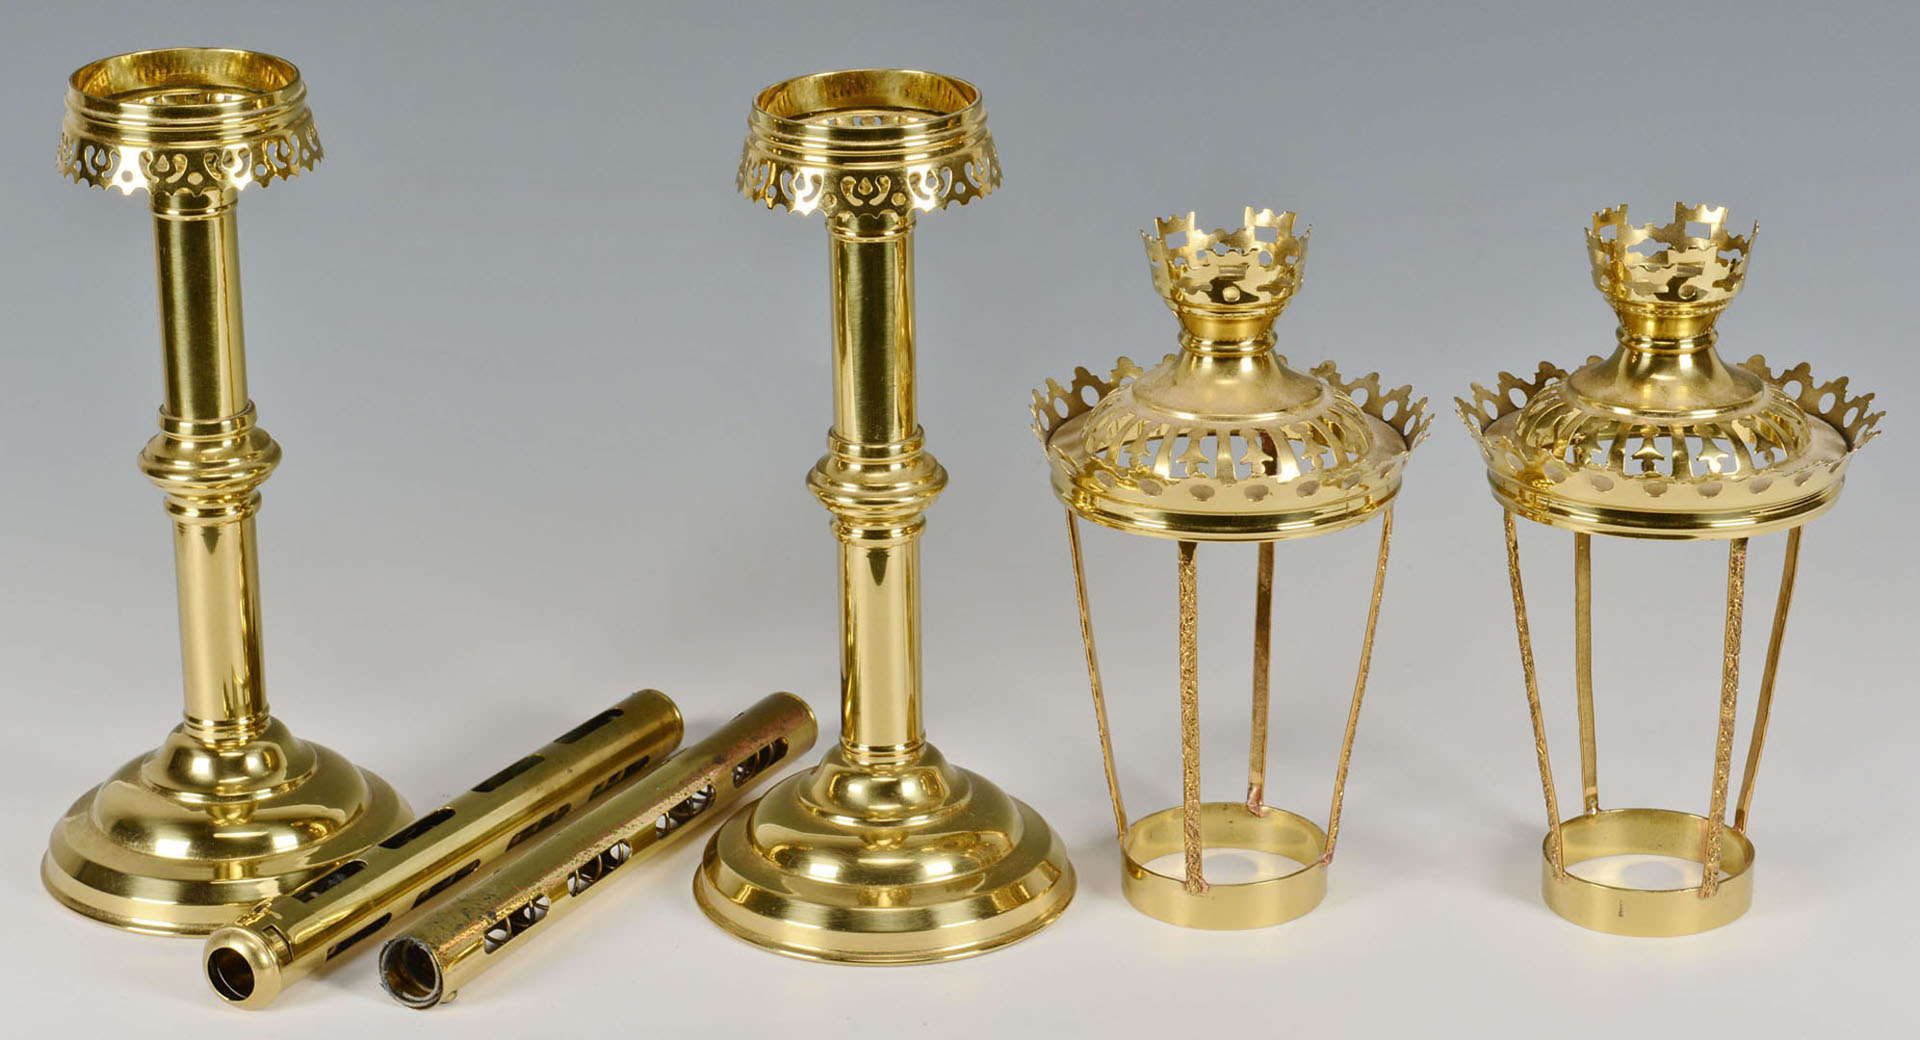 Lot 588: 4 Brass Altar Candlesticks